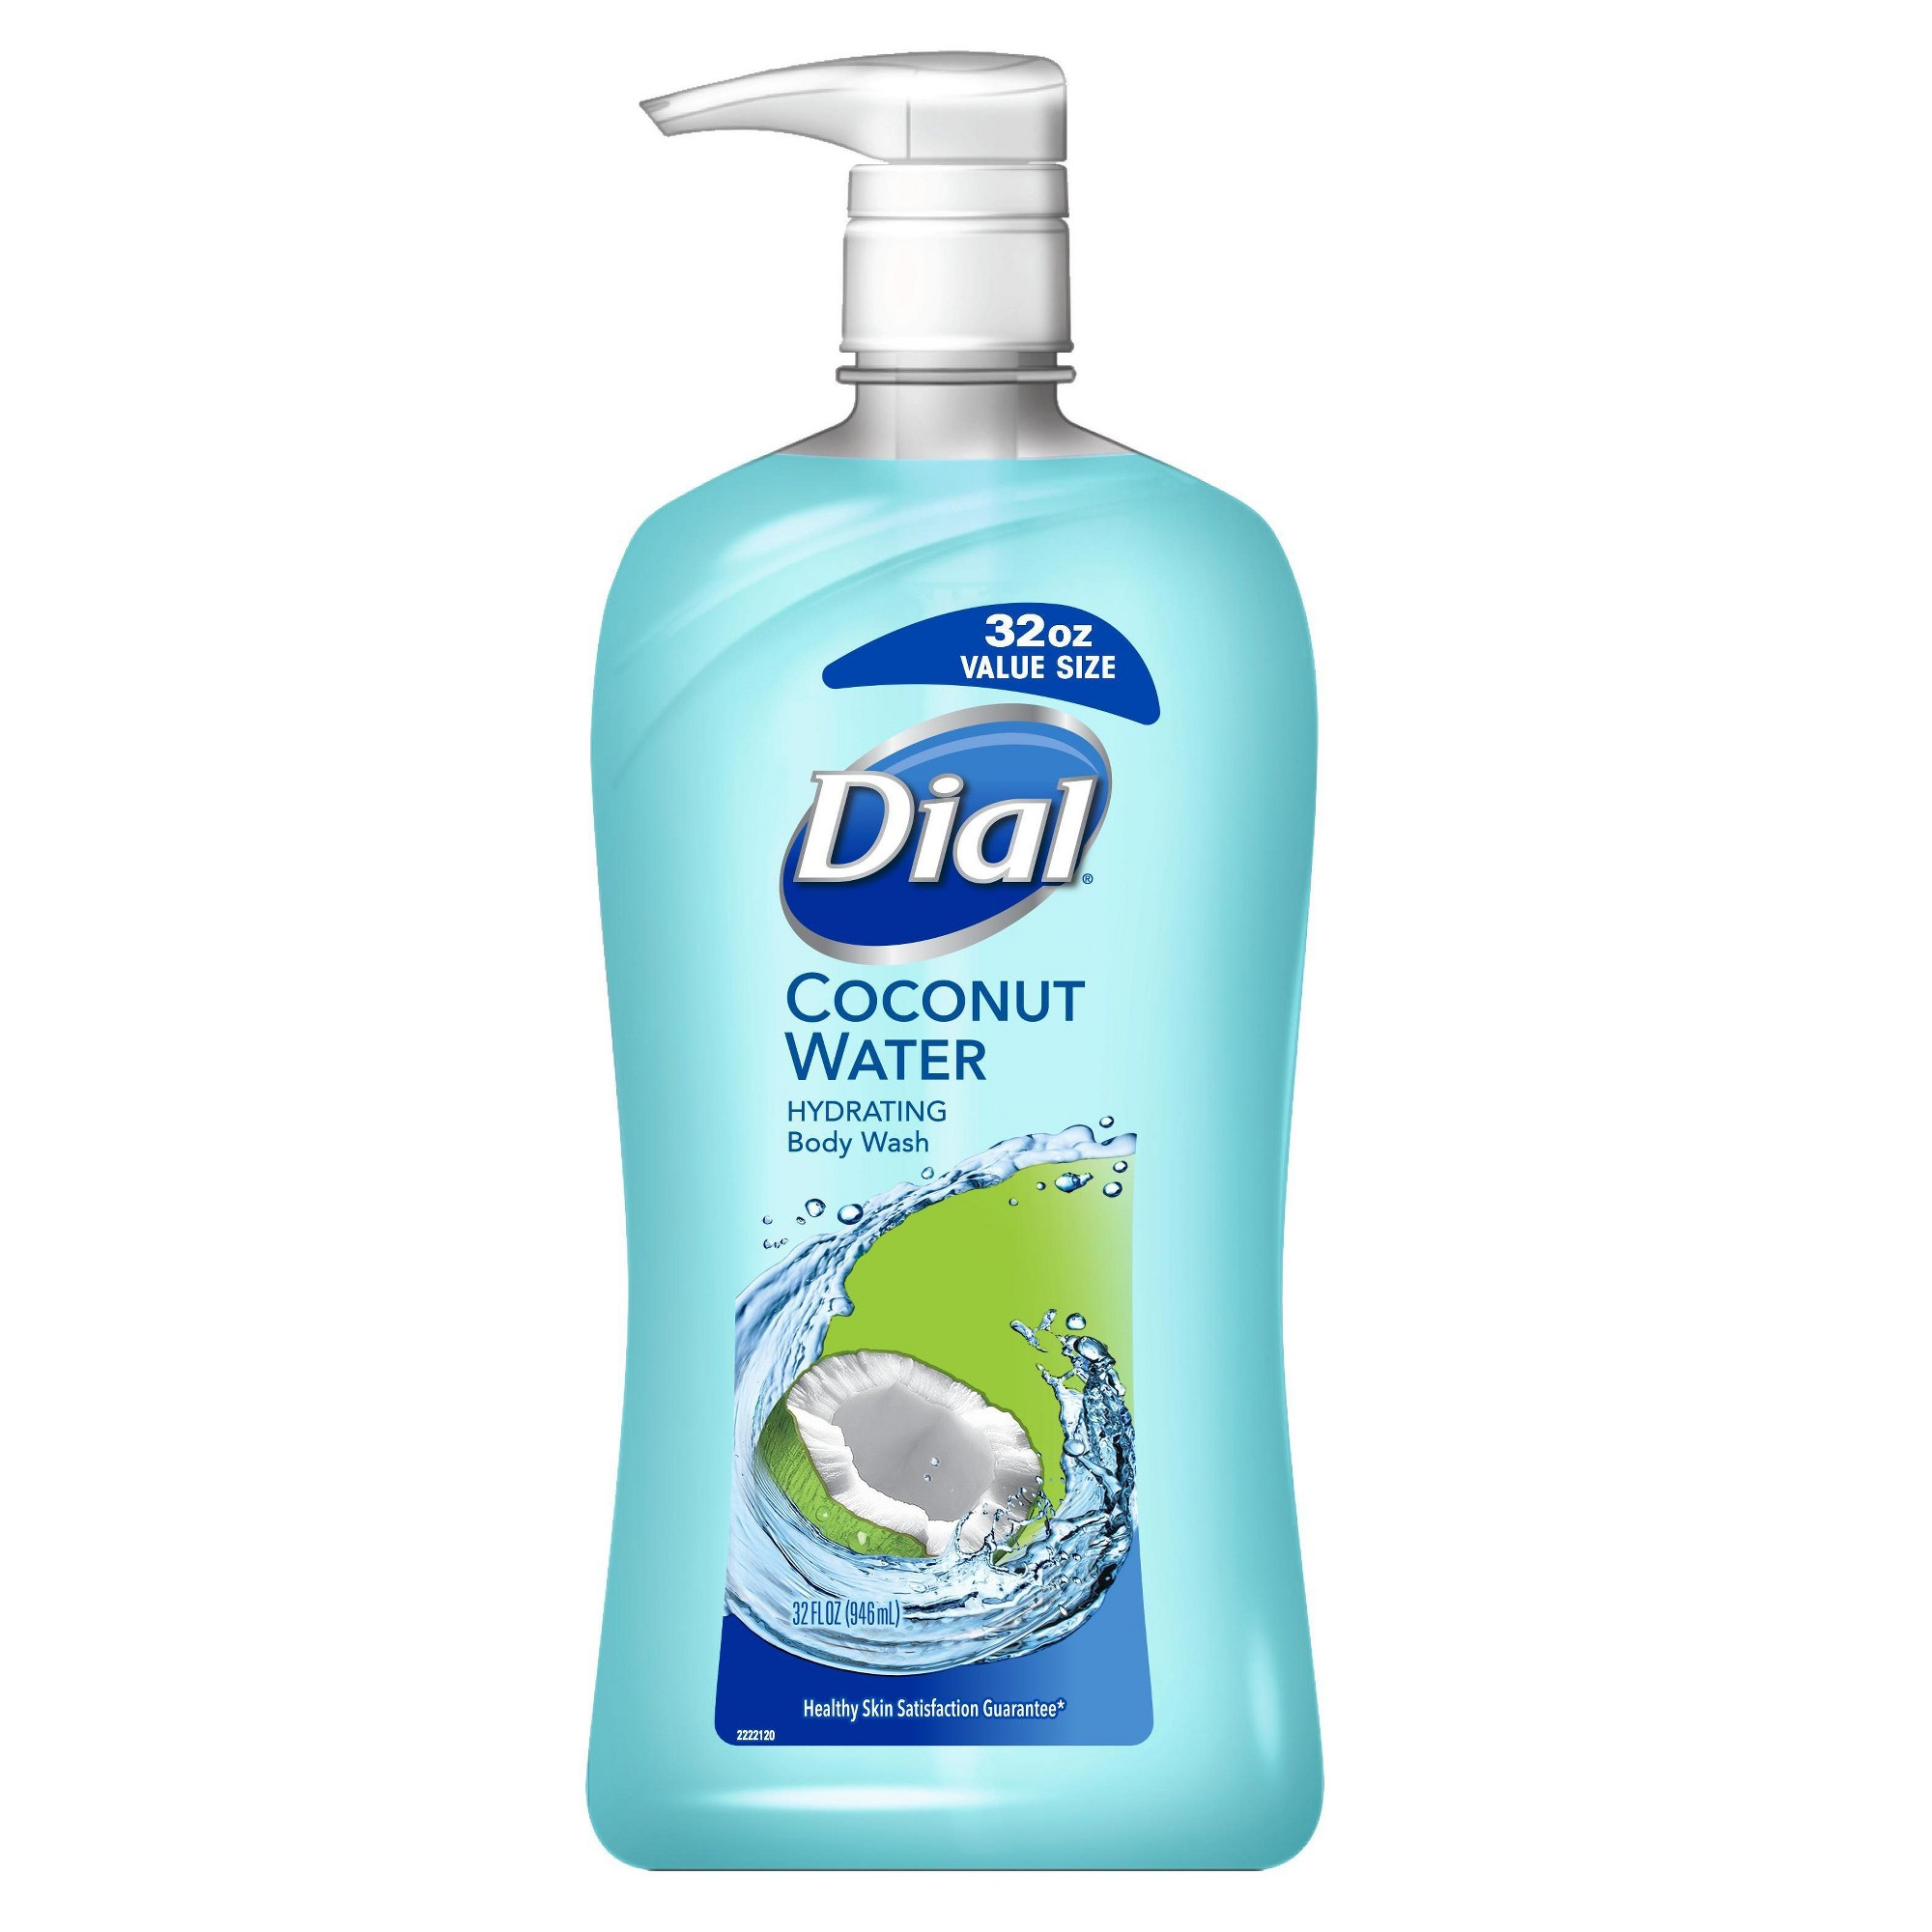 Dial Coconut Water Body Wash 32oz Body Wash Coconut Water